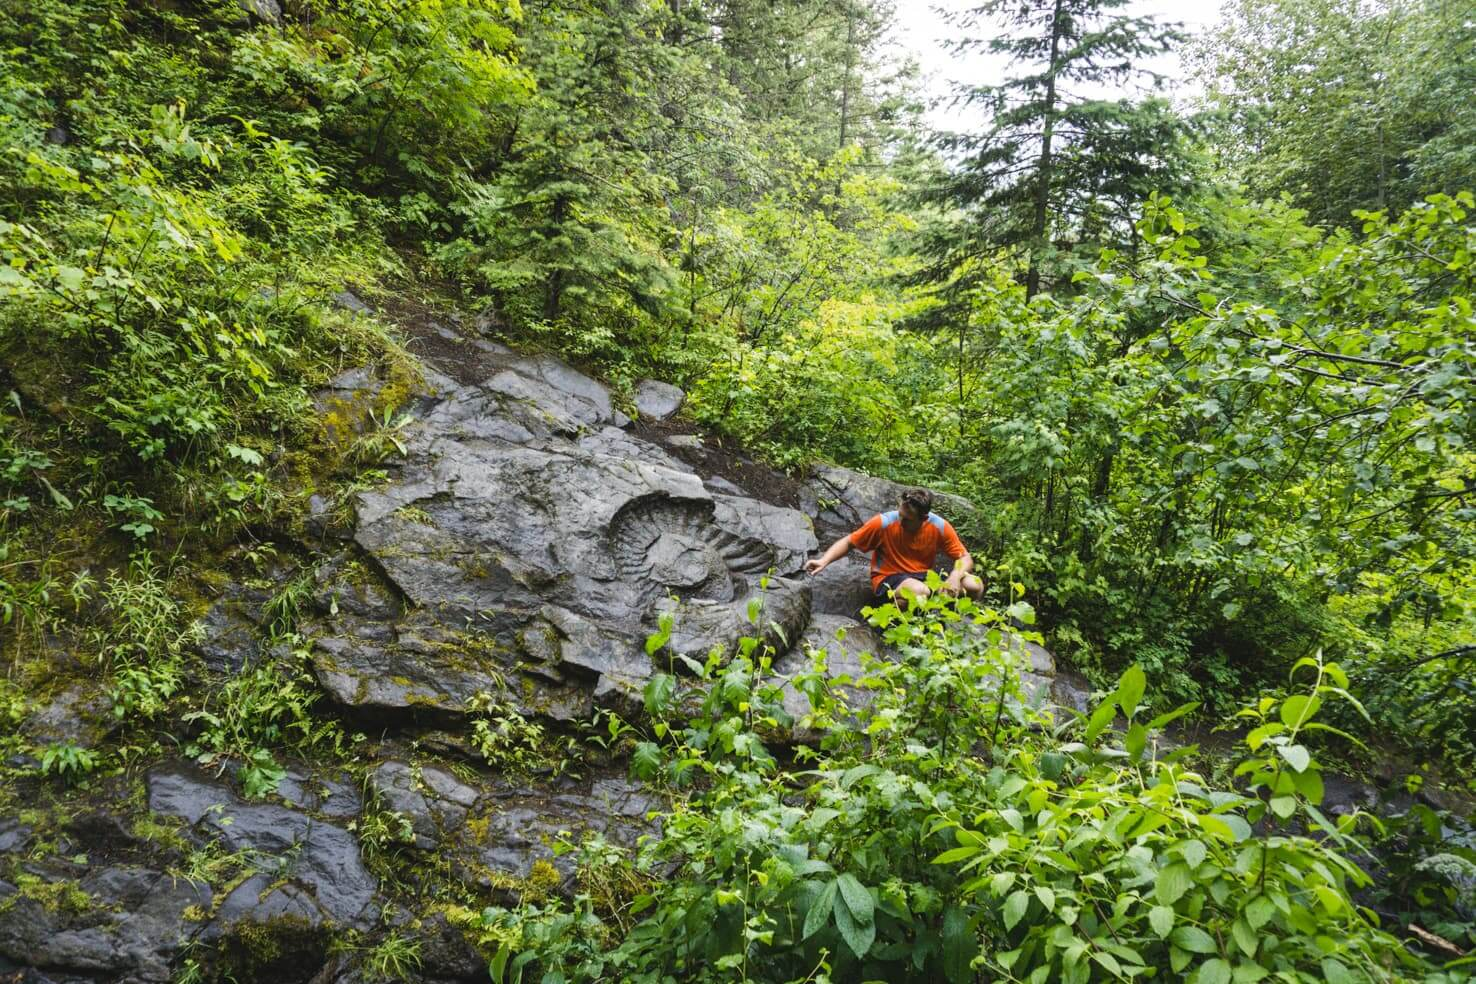 Things to do in Fernie, BC - 18 Find Canada's largest ammonite fossil